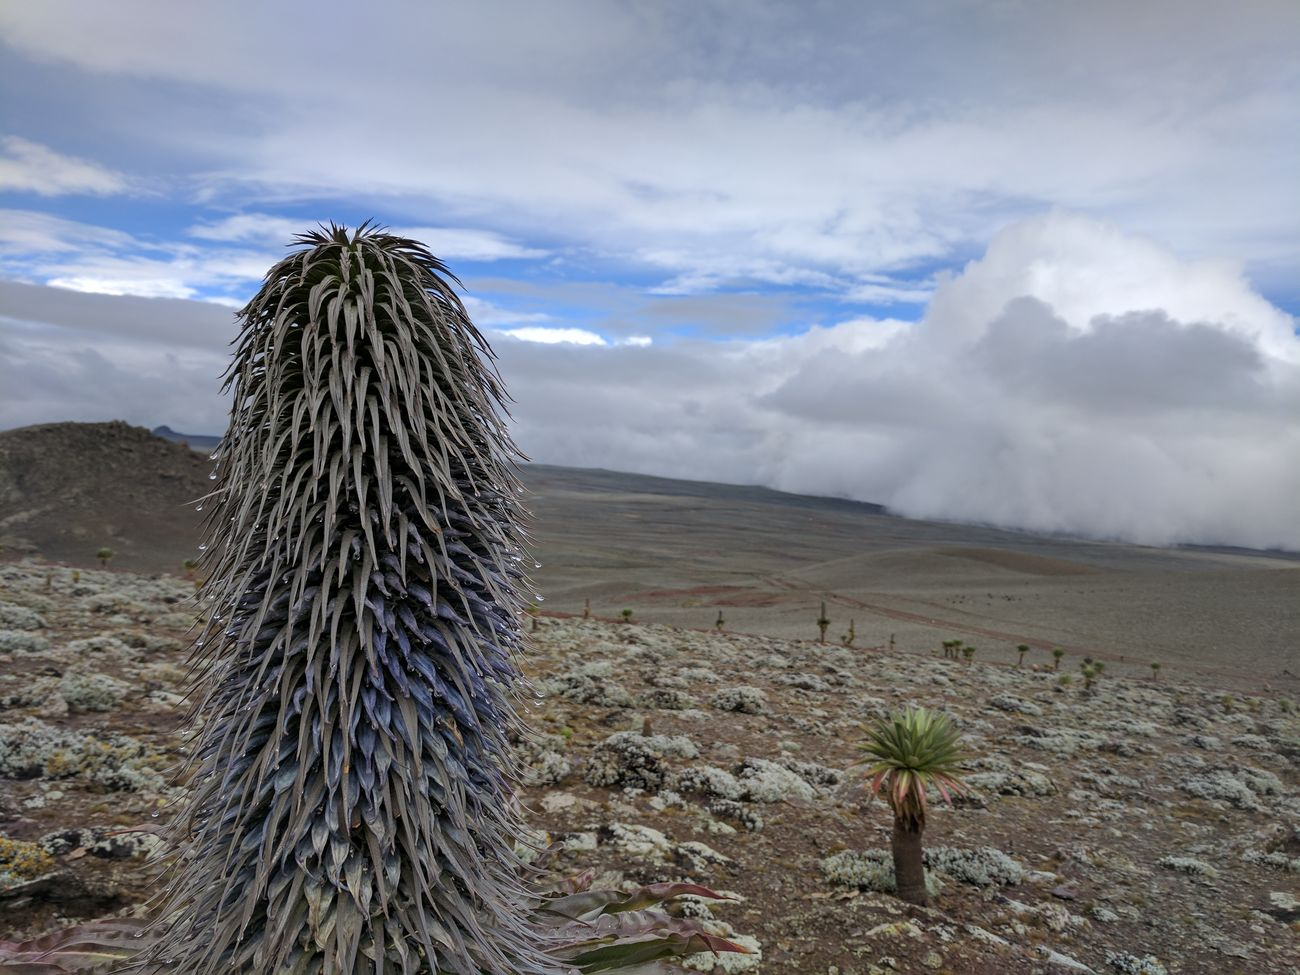 Travel Photography Hiking Adventures Balemountains Surreal Misty Goba Ethiopia Nature Outdoors Cloud - Sky Day No People Sky Desert Pixel